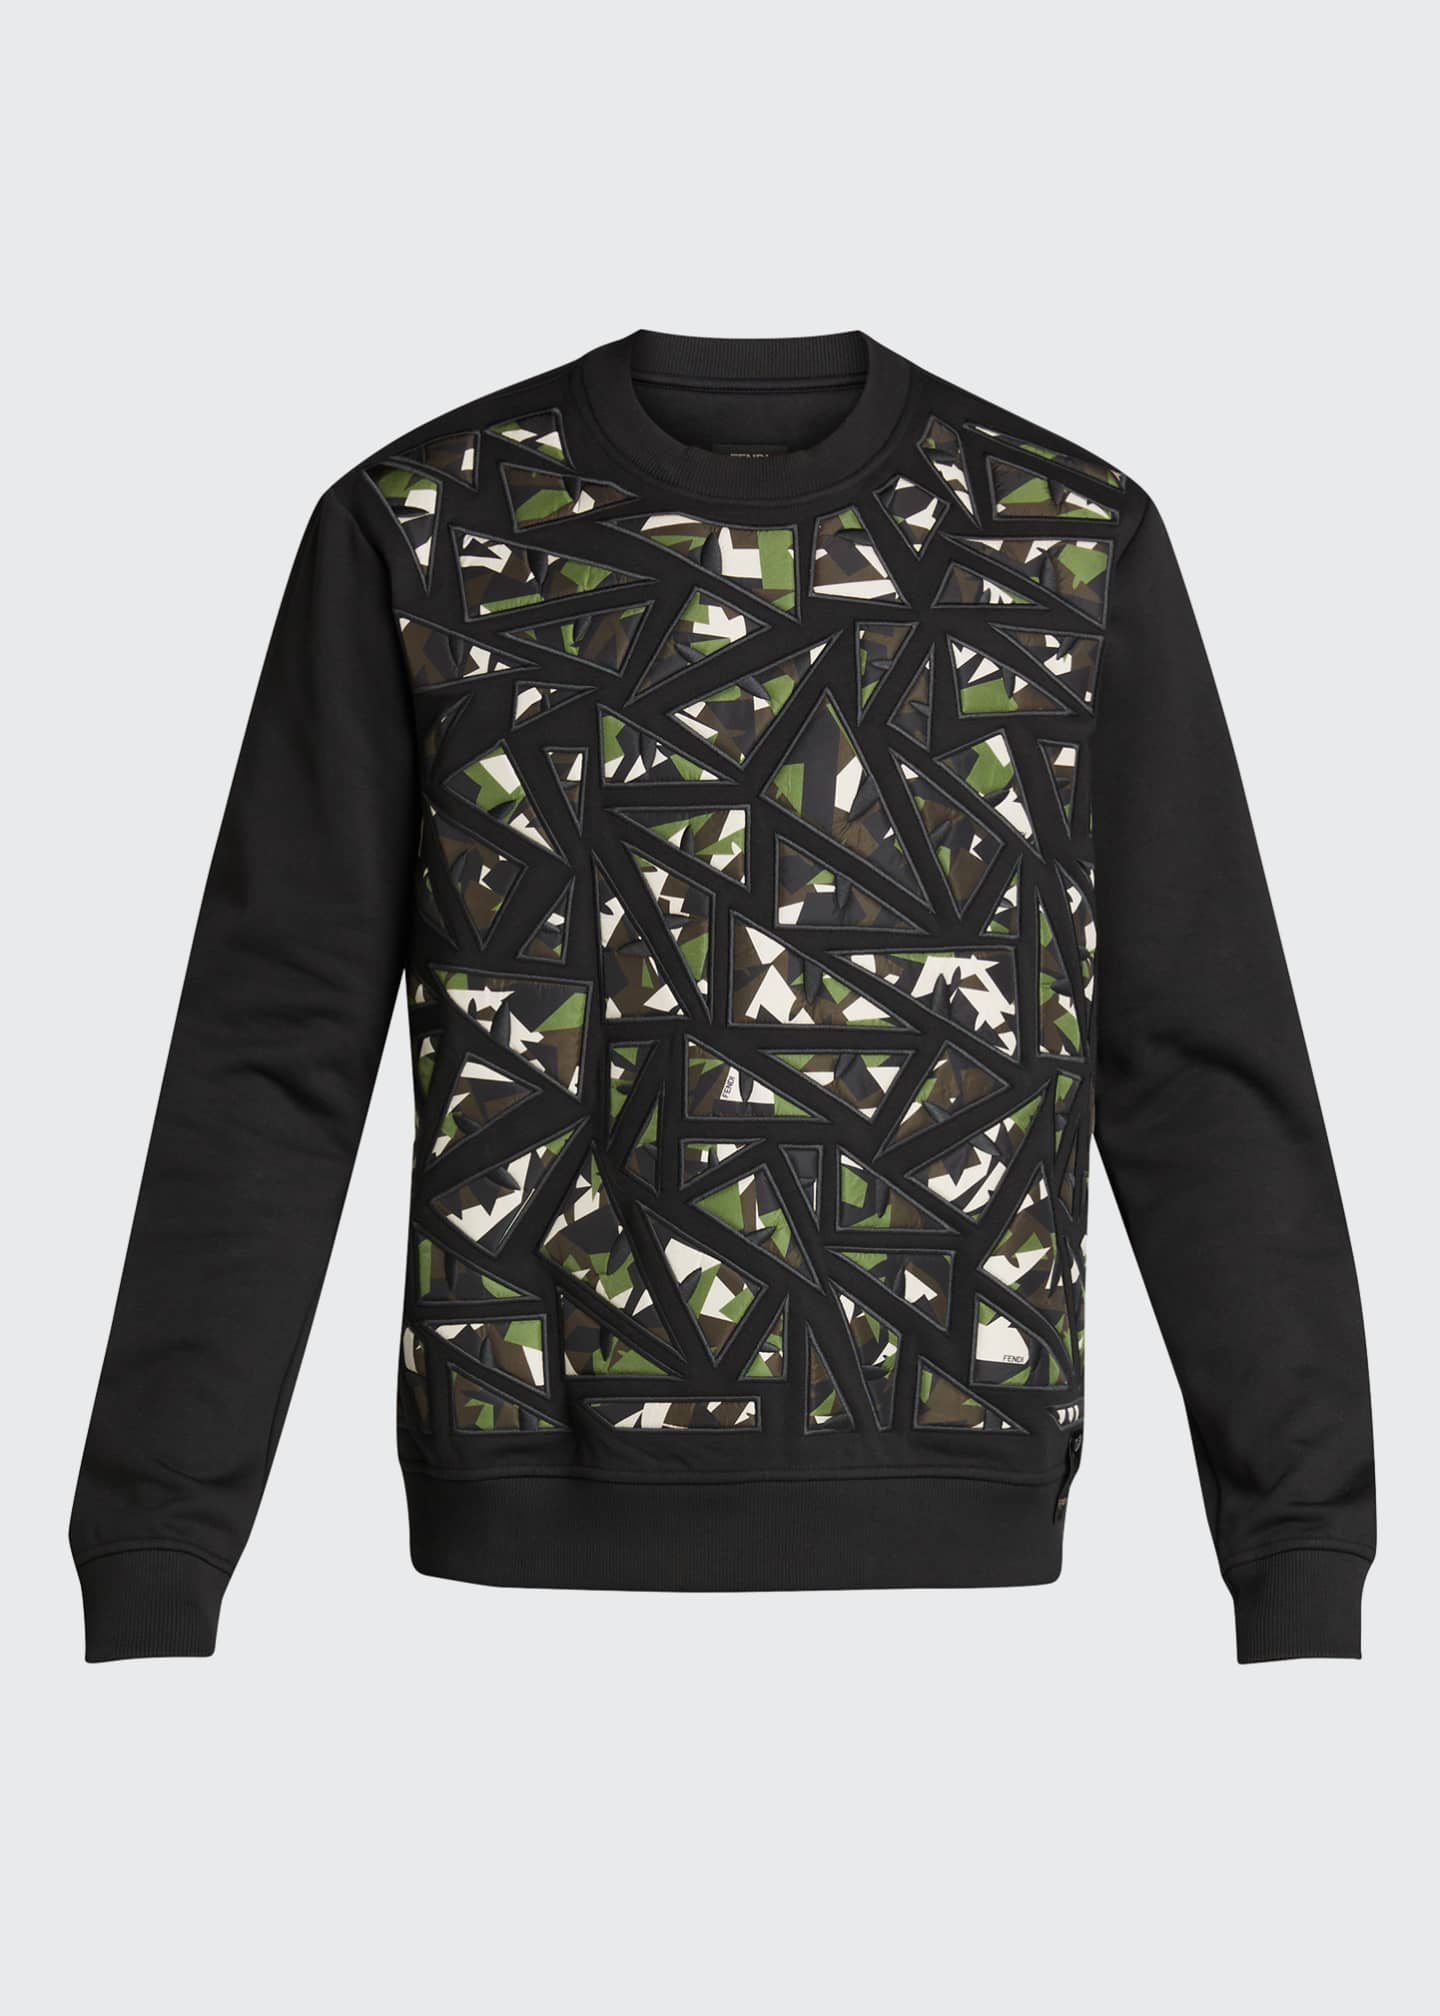 Image 5 of 5: Men's Camo Bugs Pieced Sweatshirt